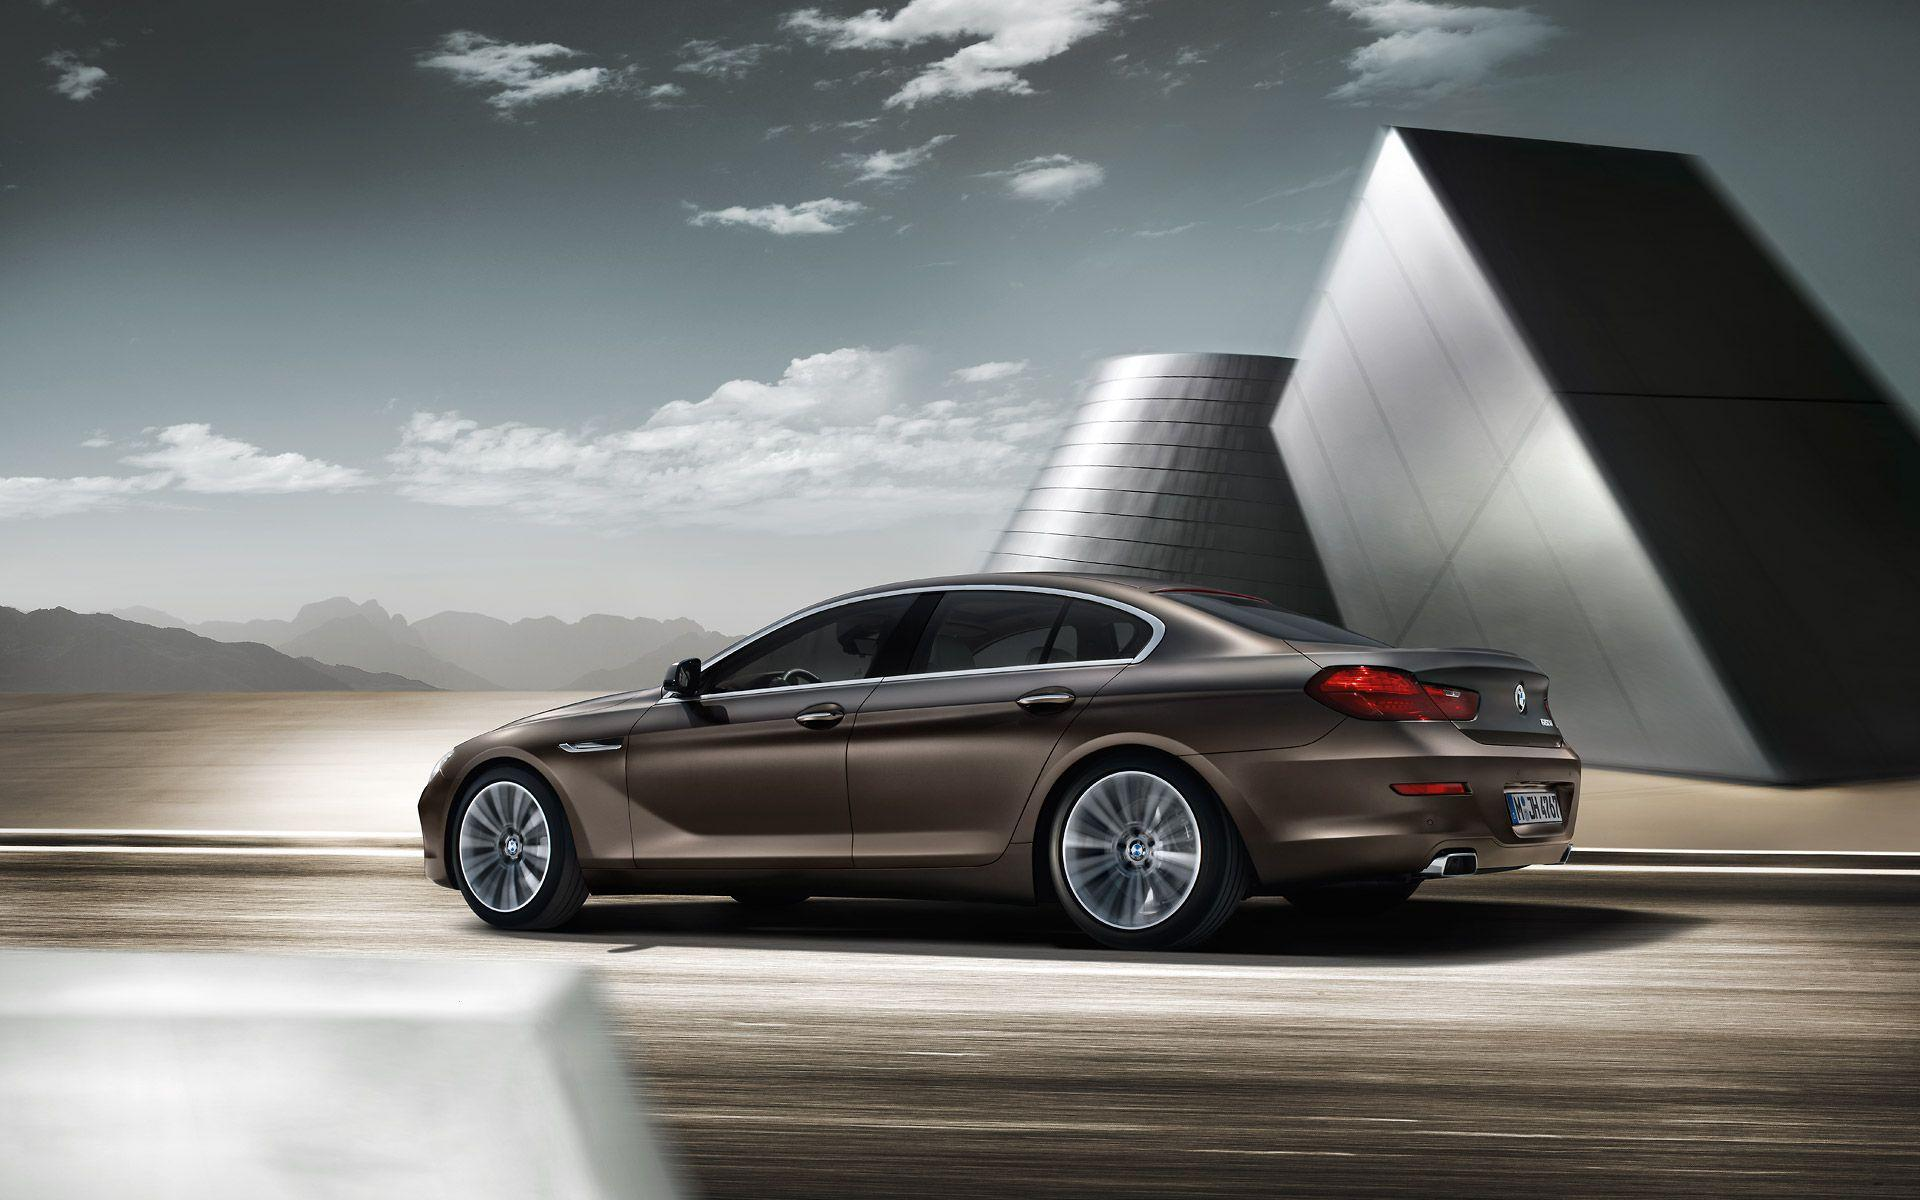 Bmw F06 6 series Gran Coupe Wallpapers & Technical comparison